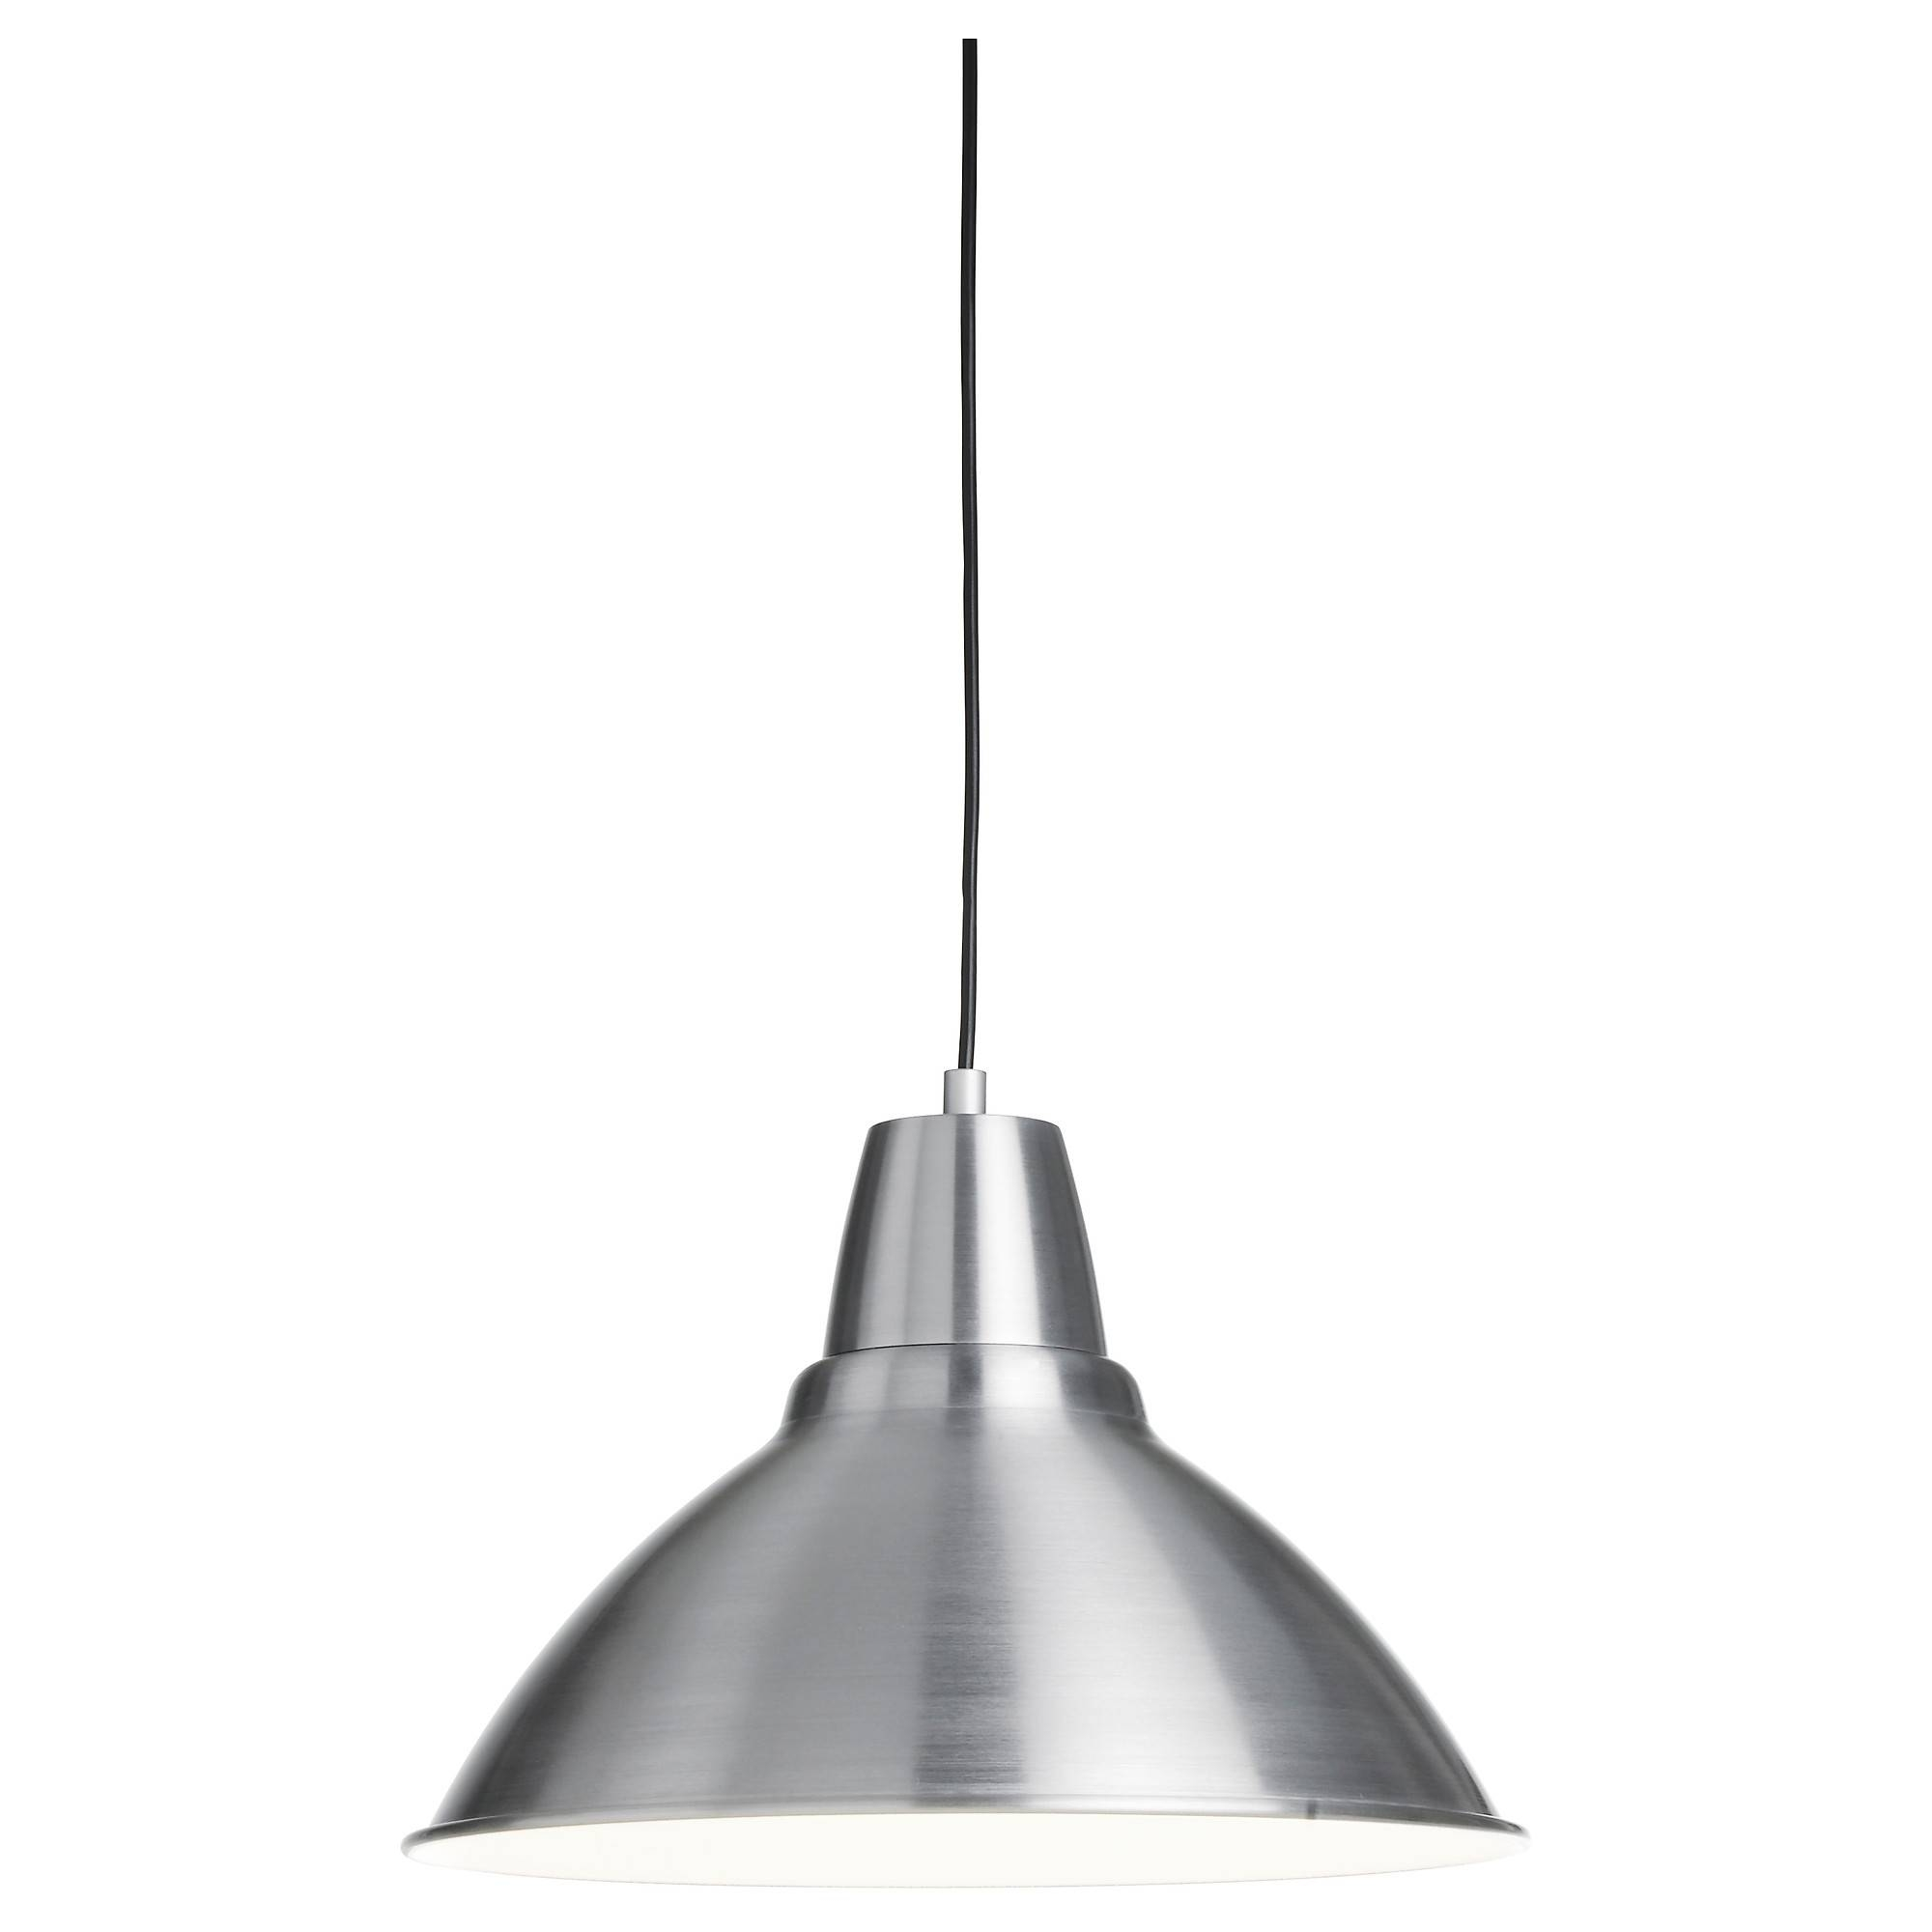 Foto Pendant Lamp - 38 Cm - Ikea with regard to Ikea Globe Pendant Lights (Image 5 of 15)